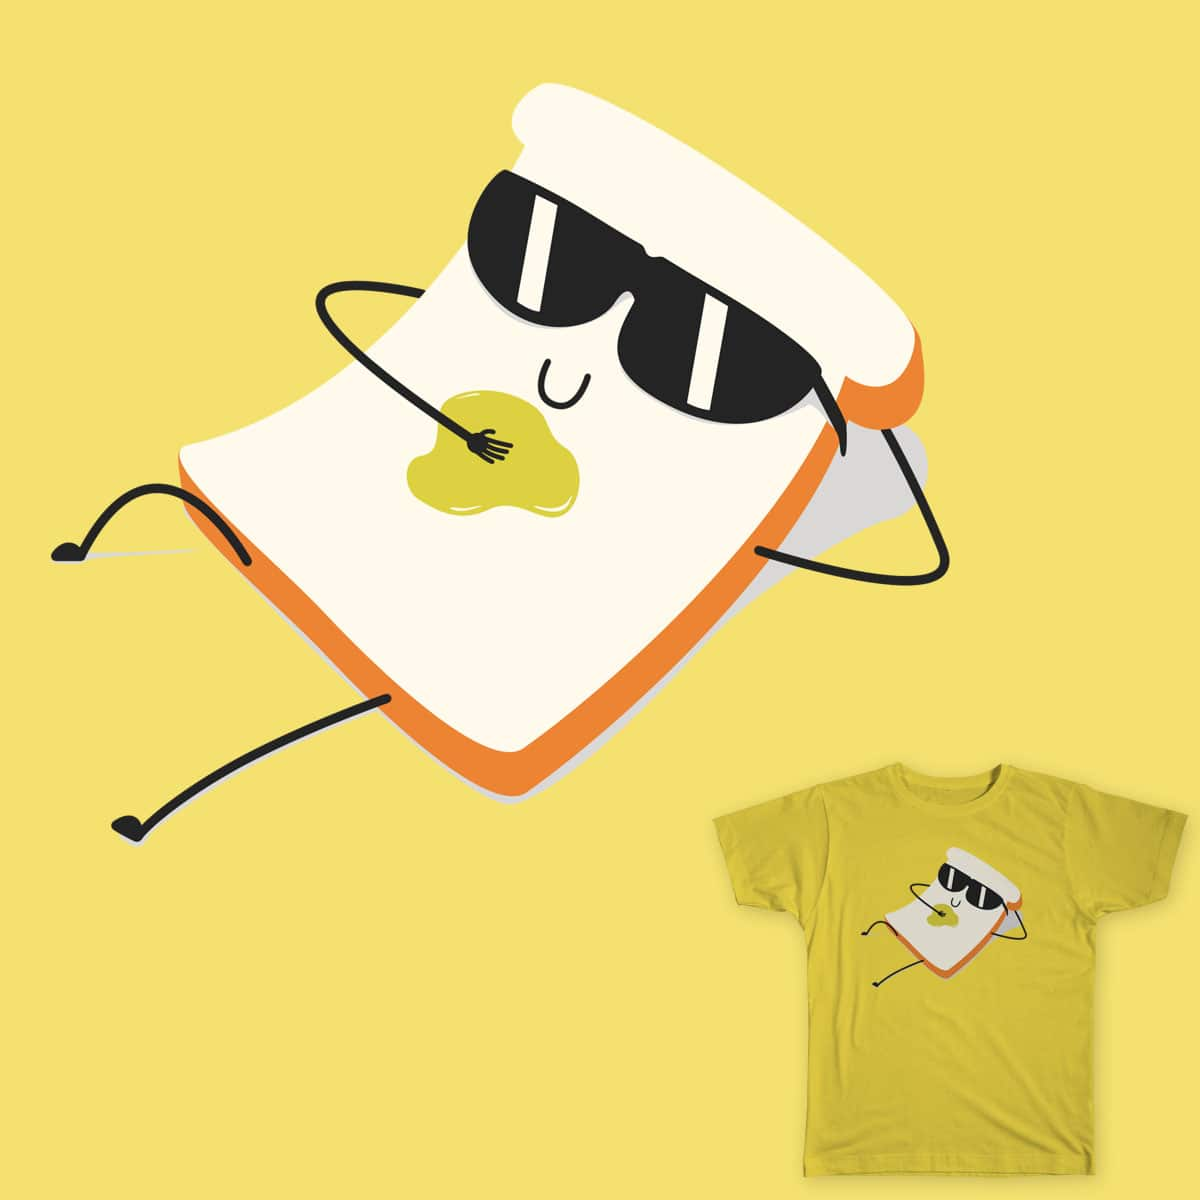 Tanning time by dharksam on Threadless